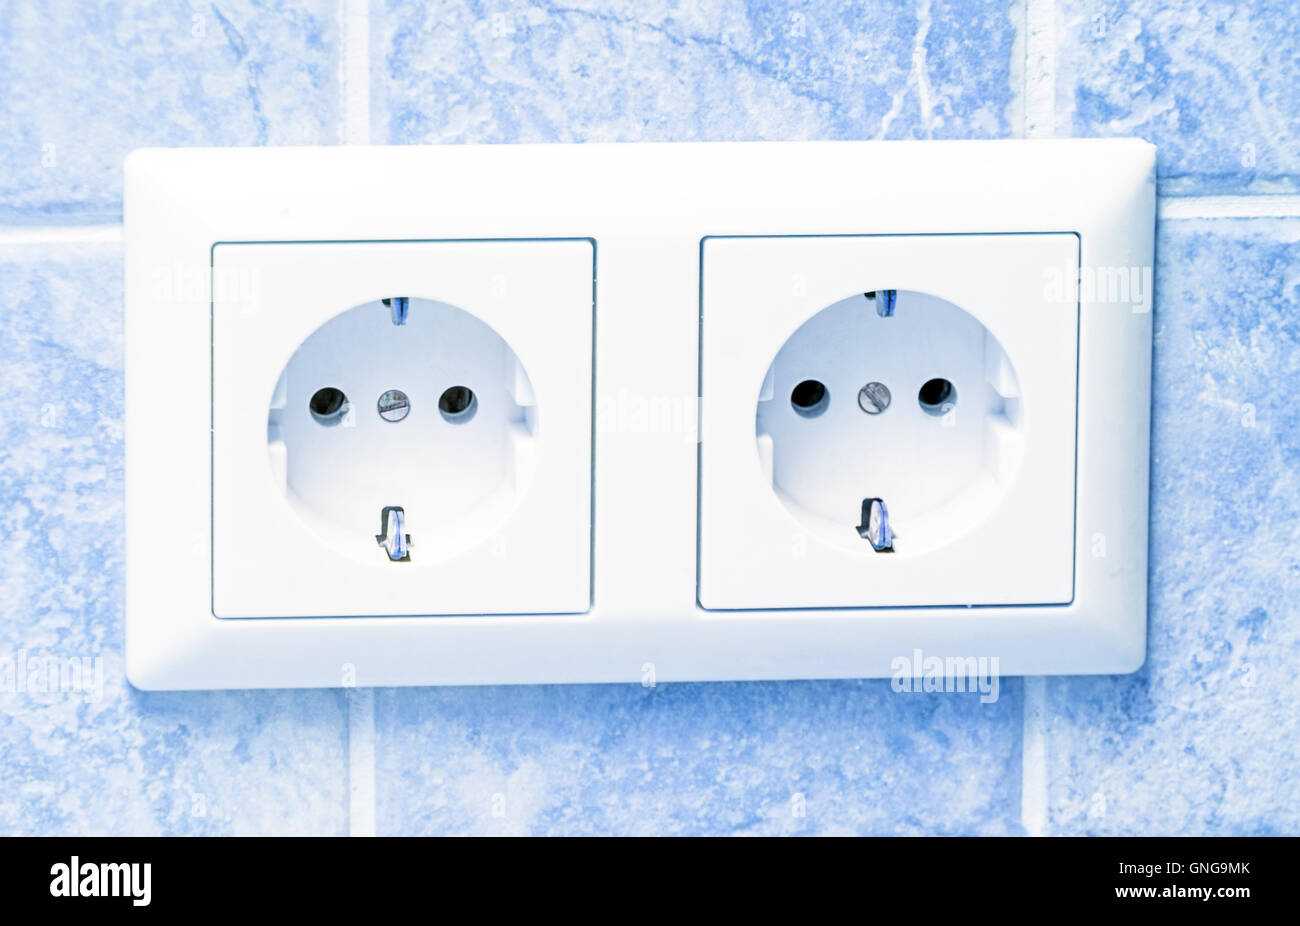 Two white sockets in light blue wall - Stock Image